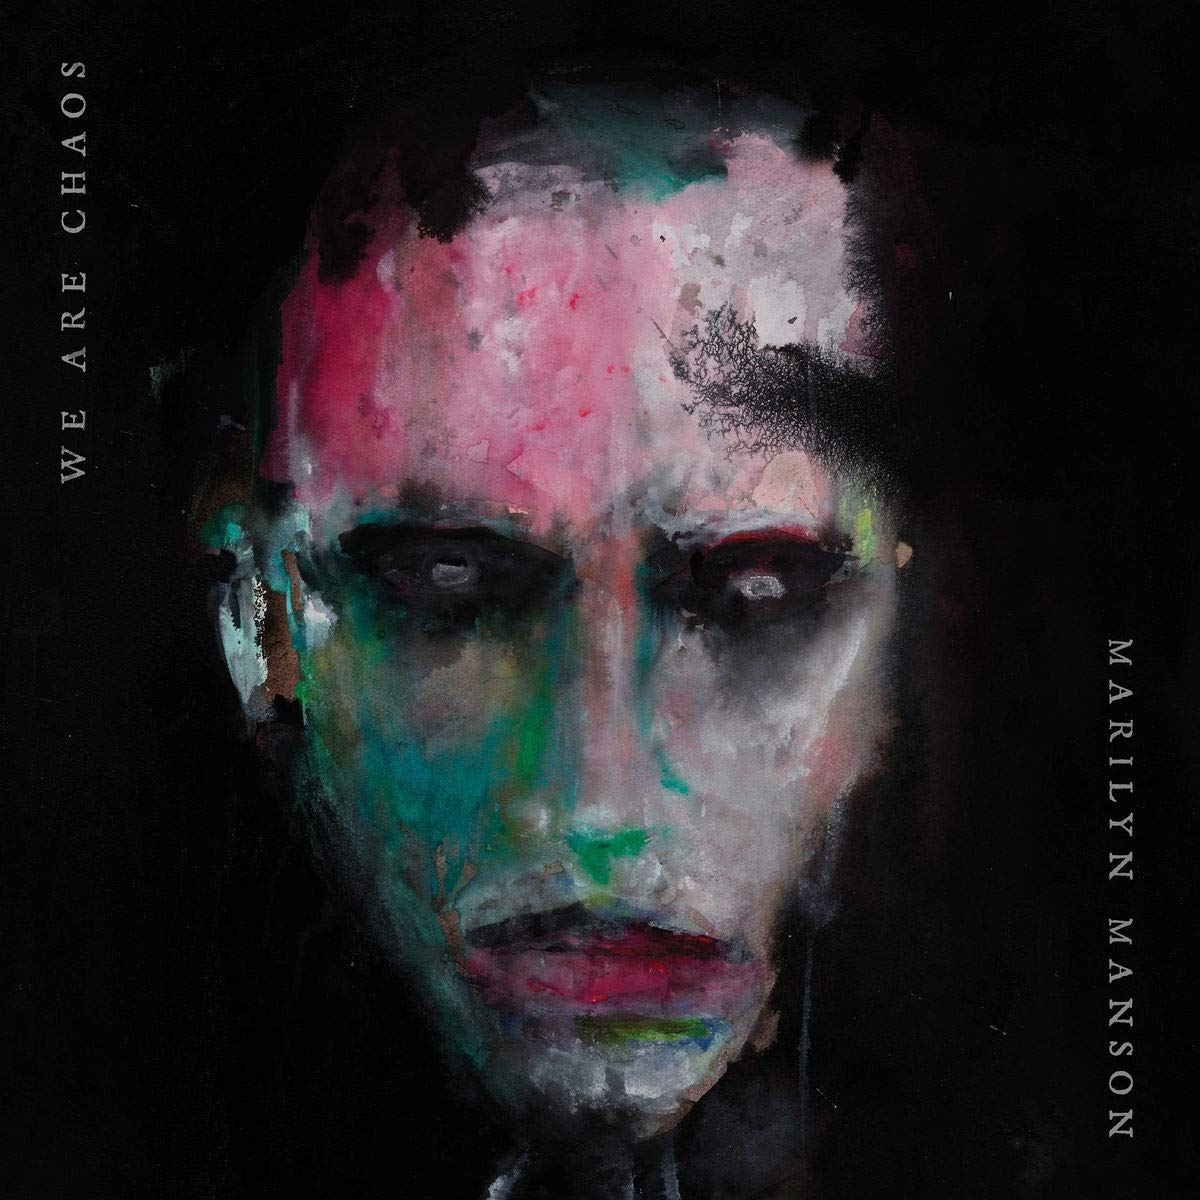 Marilyn Manson - WE ARE CHAOS (2020) [FLAC] Download